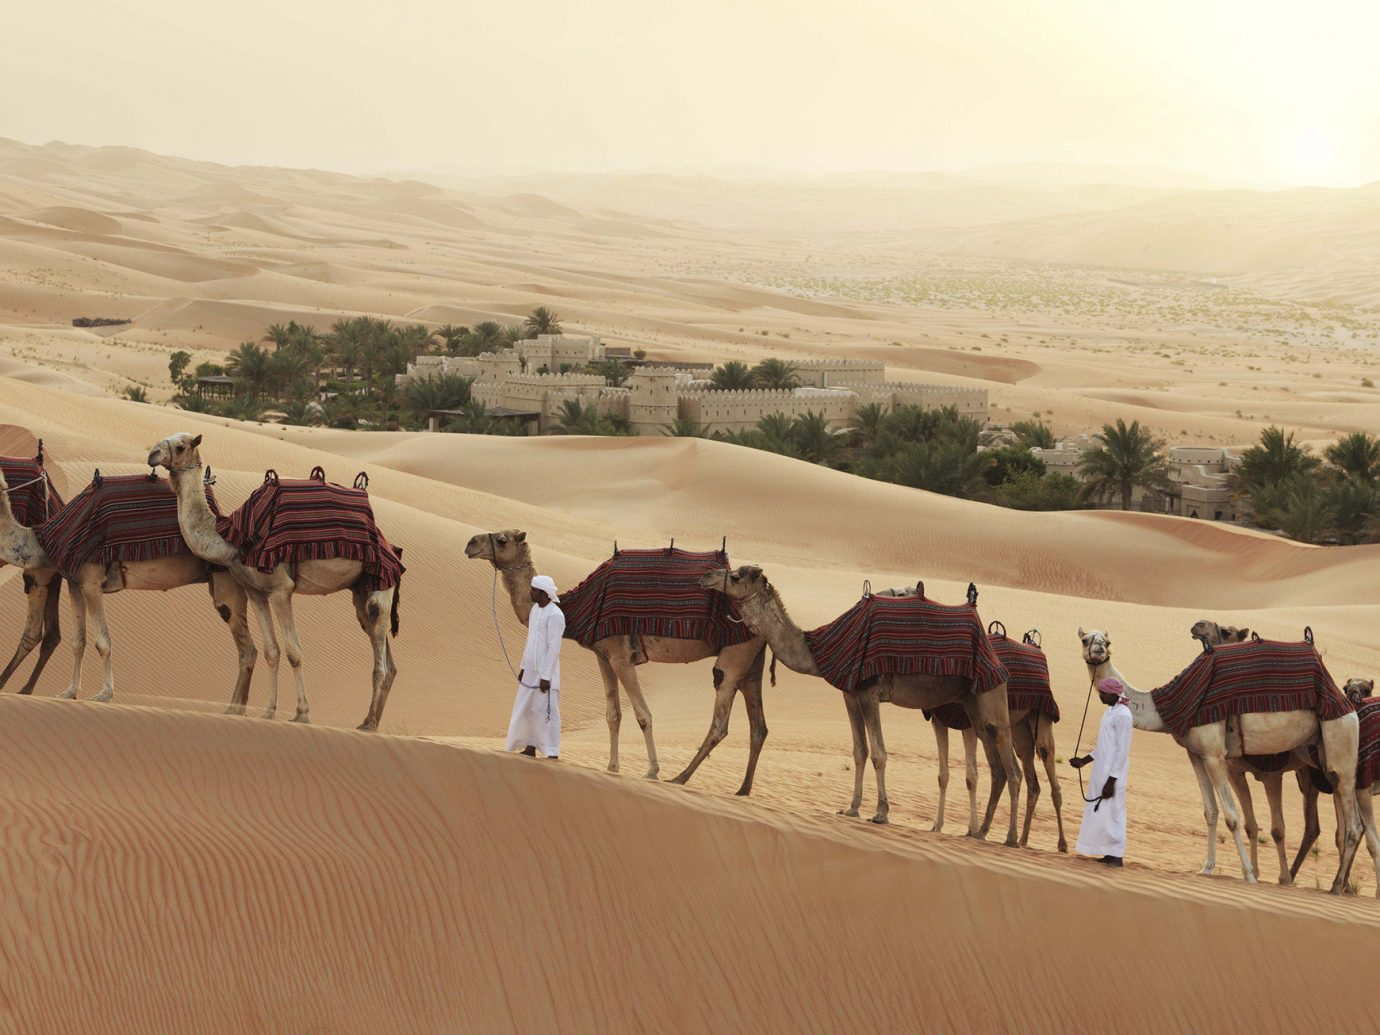 Beauty Trip Ideas sky outdoor Camel natural environment landform sahara Desert geographical feature aeolian landform erg cross arabian camel landscape camel like mammal herd mustang horse group wadi cattle line several